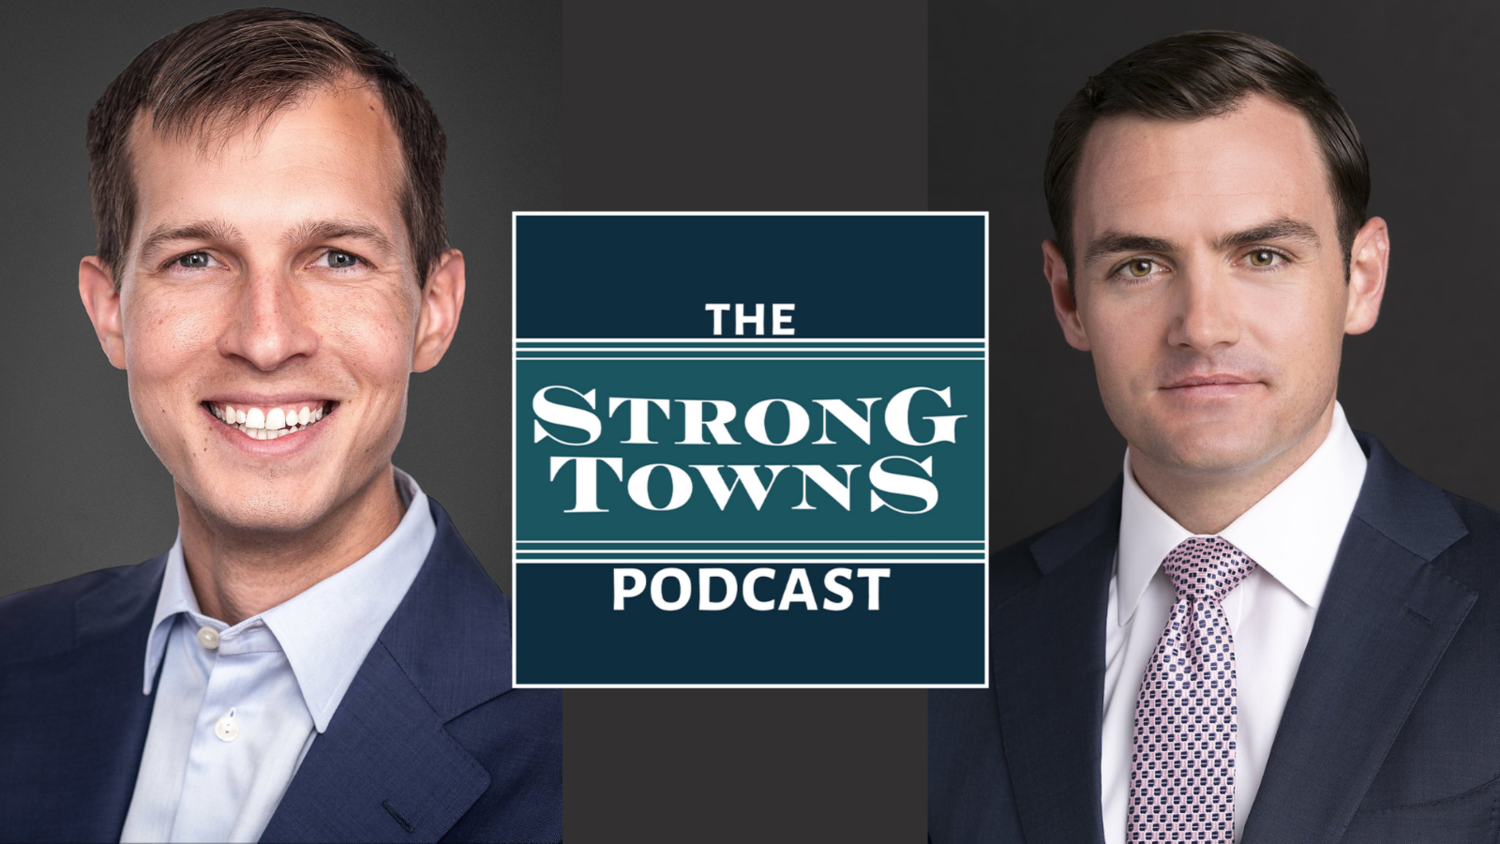 Rep. Jake Auchincloss & Rep. Mike Gallagher: How Congress Can Support Local Leaders and Get the Economy Going (Video)